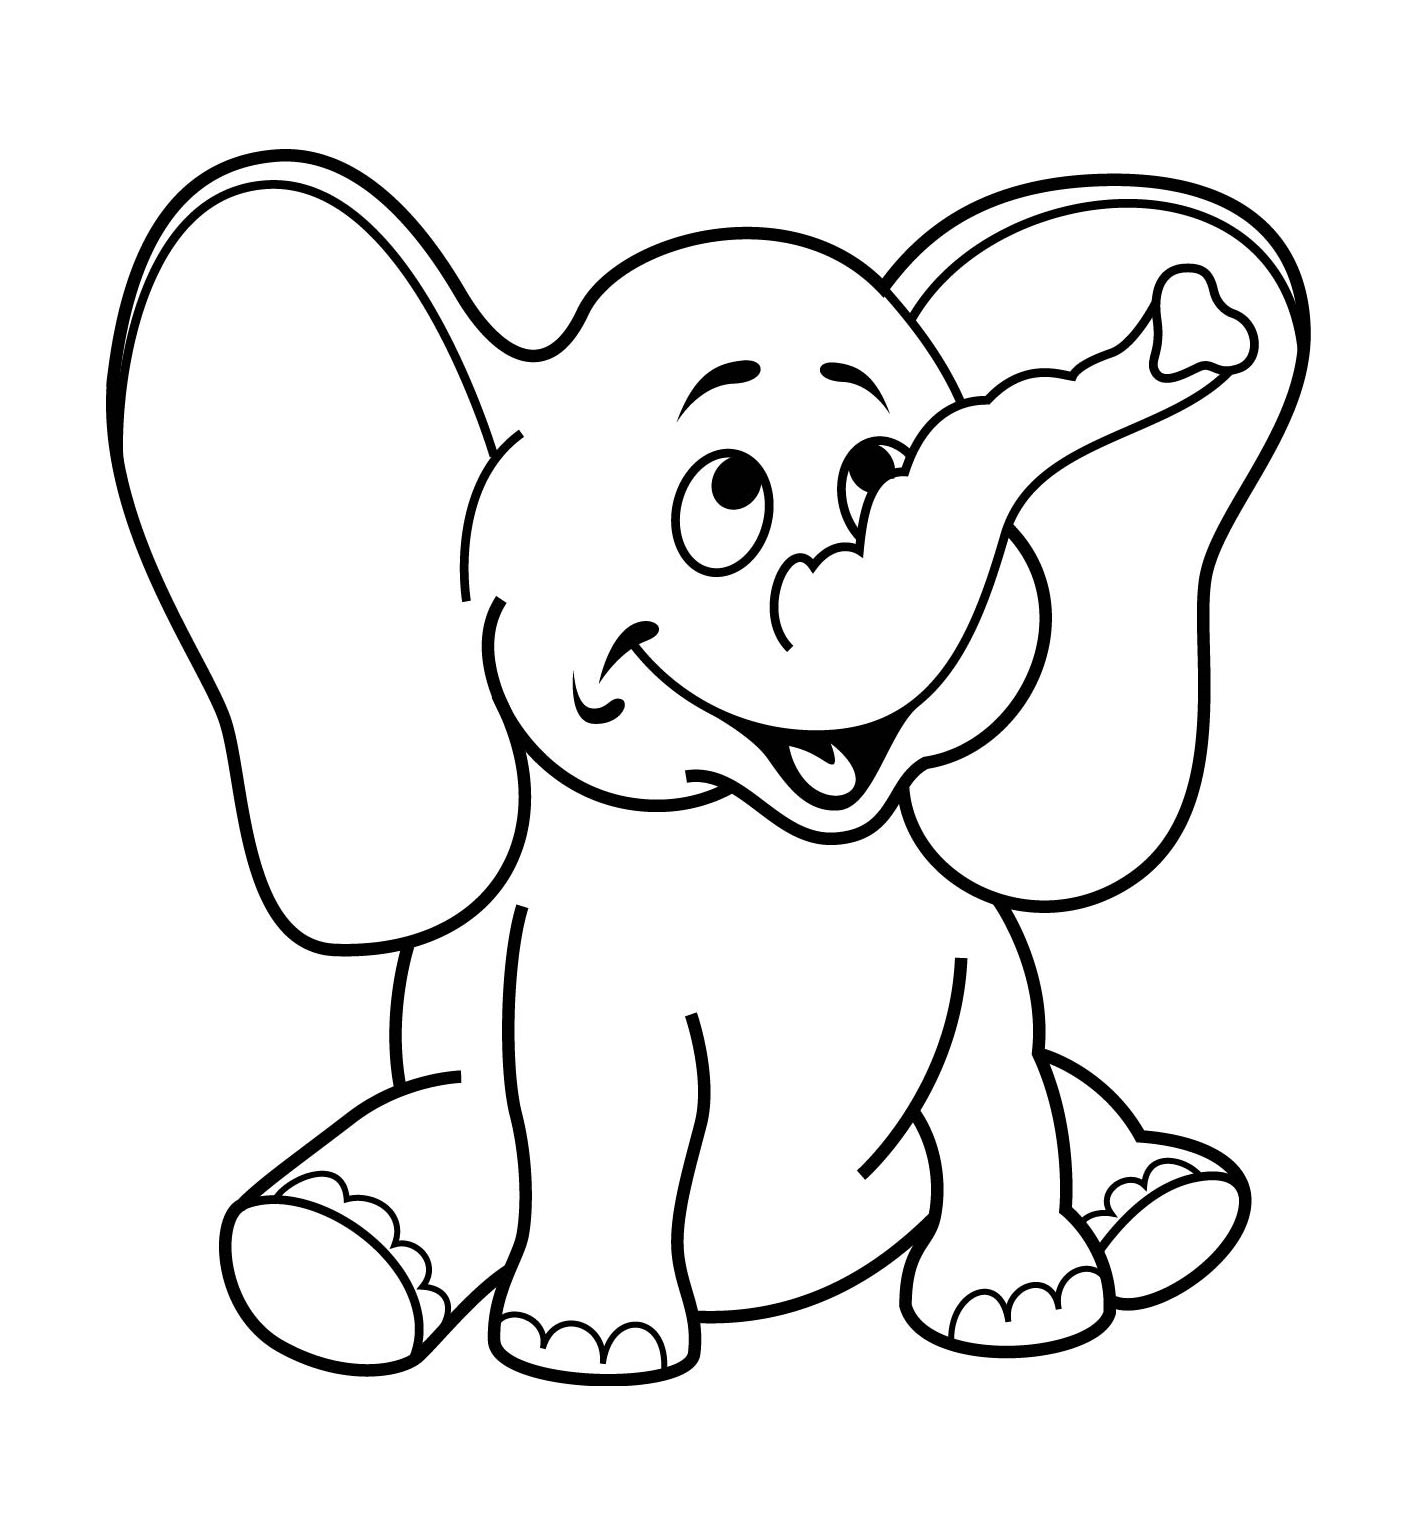 Coloring pages for 3 4 year old girls, 3,4 years, nursery to print for free